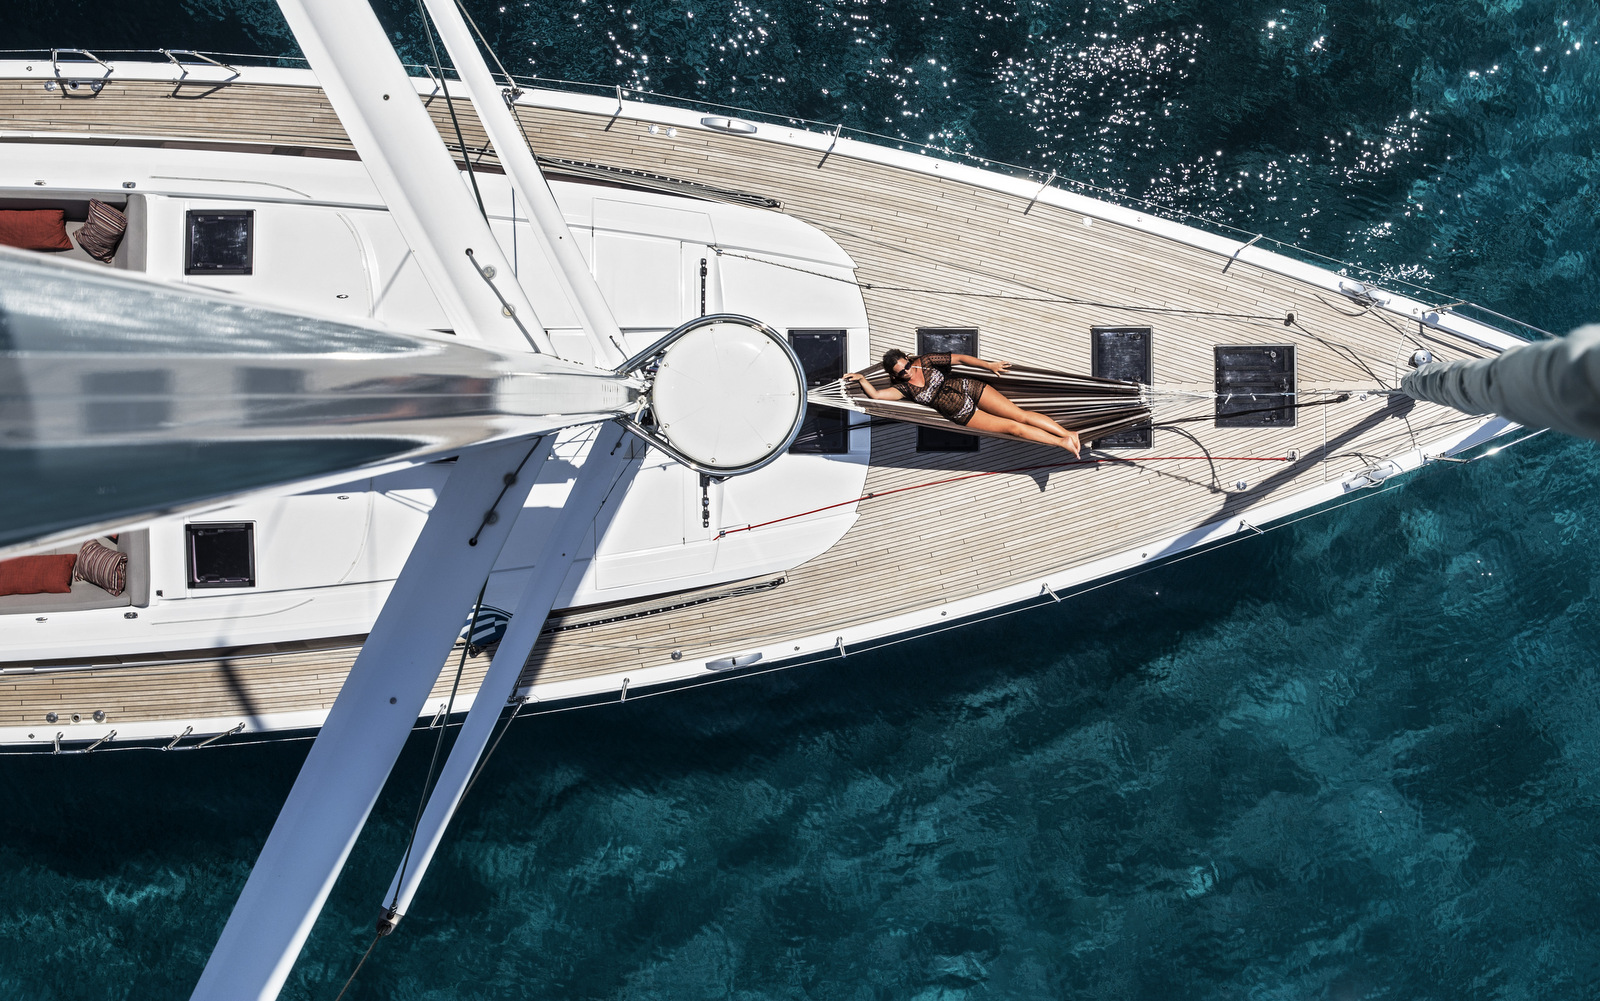 Super-yacht sailing holiday